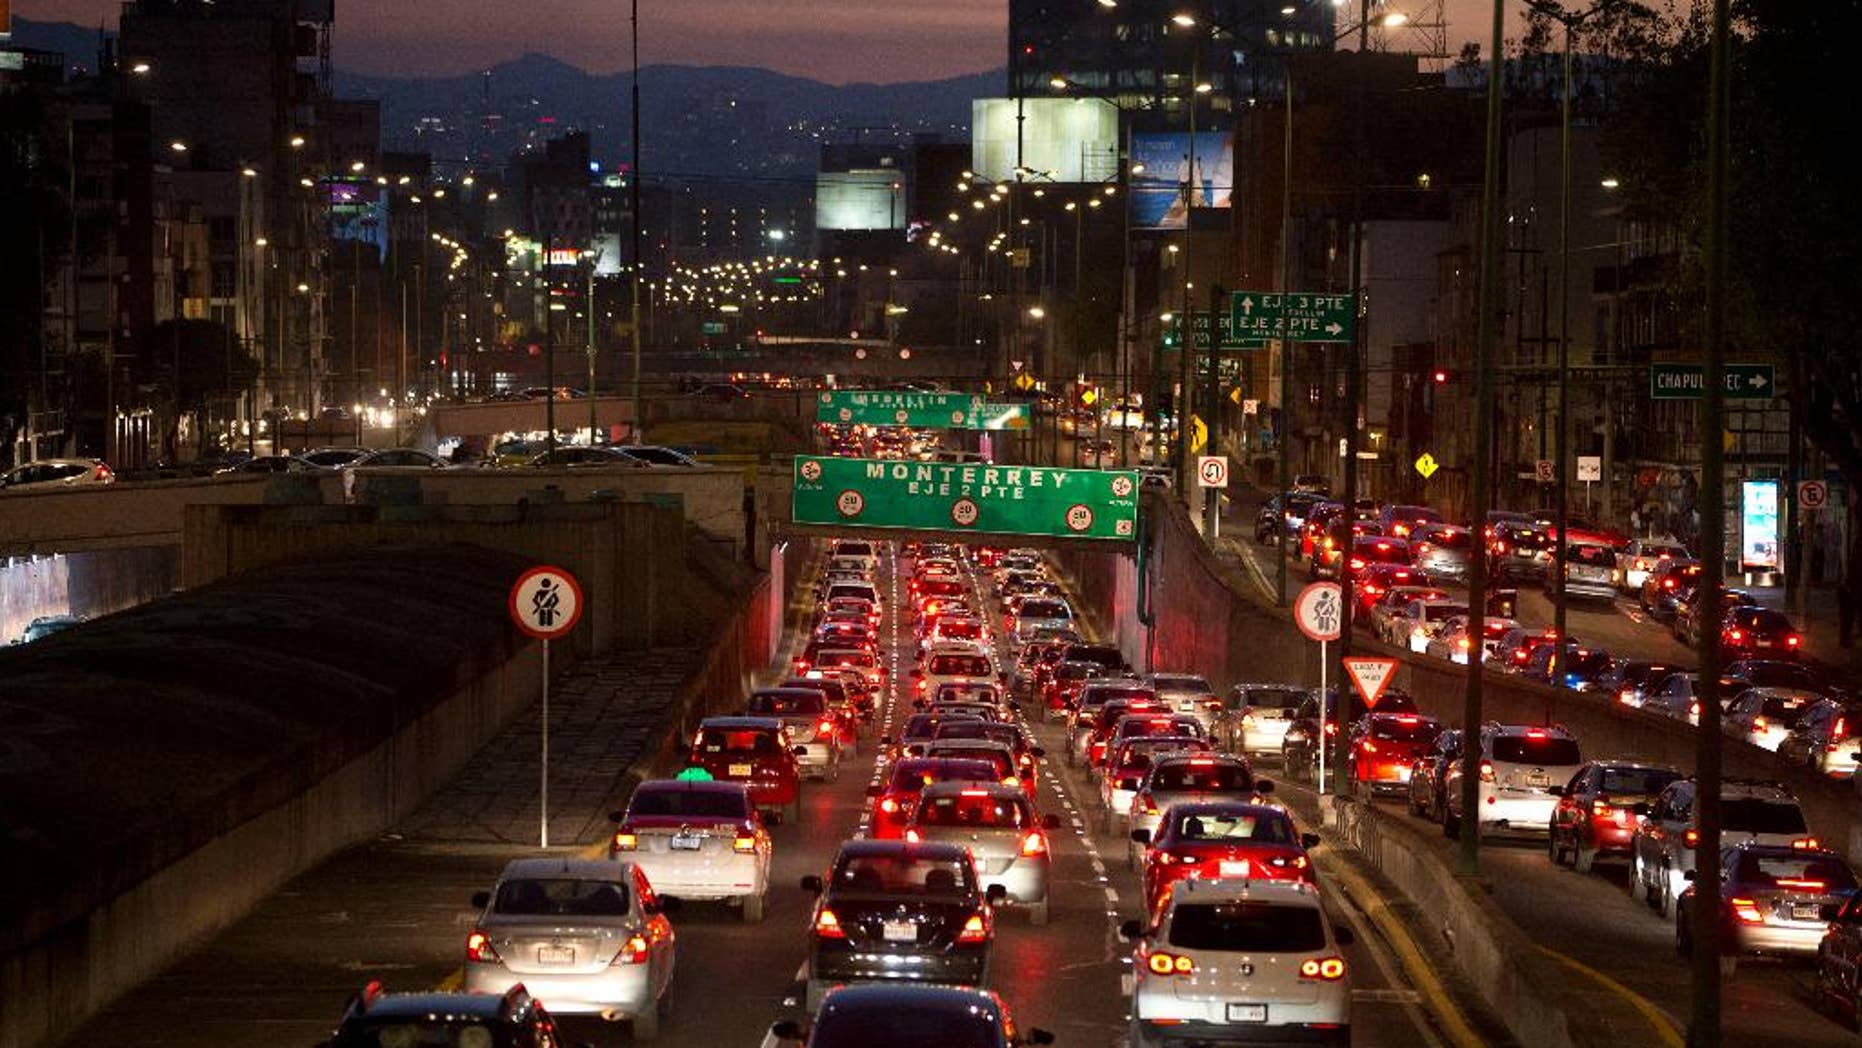 FILE - In this March 30, 2016 file photo, cars sit in evening rush hour traffic in Mexico City. Mexican authorities issued a new smog alert Saturday, May 14, 2016, for the capital after ozone levels rose above 150 percent of acceptable limits. On Sunday 20 percent of vehicles will be barred from the streets of the capital and the surrounding suburbs. If conditions don't improve, that will increase to 40 percent on Monday. (AP Photo/Rebecca Blackwell, File)